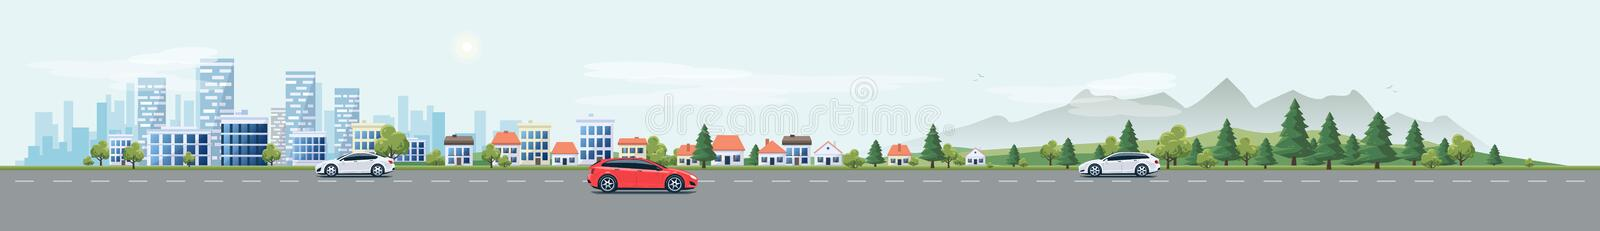 Urban Landscape Street Road with Cars and City Nature Background stock illustration